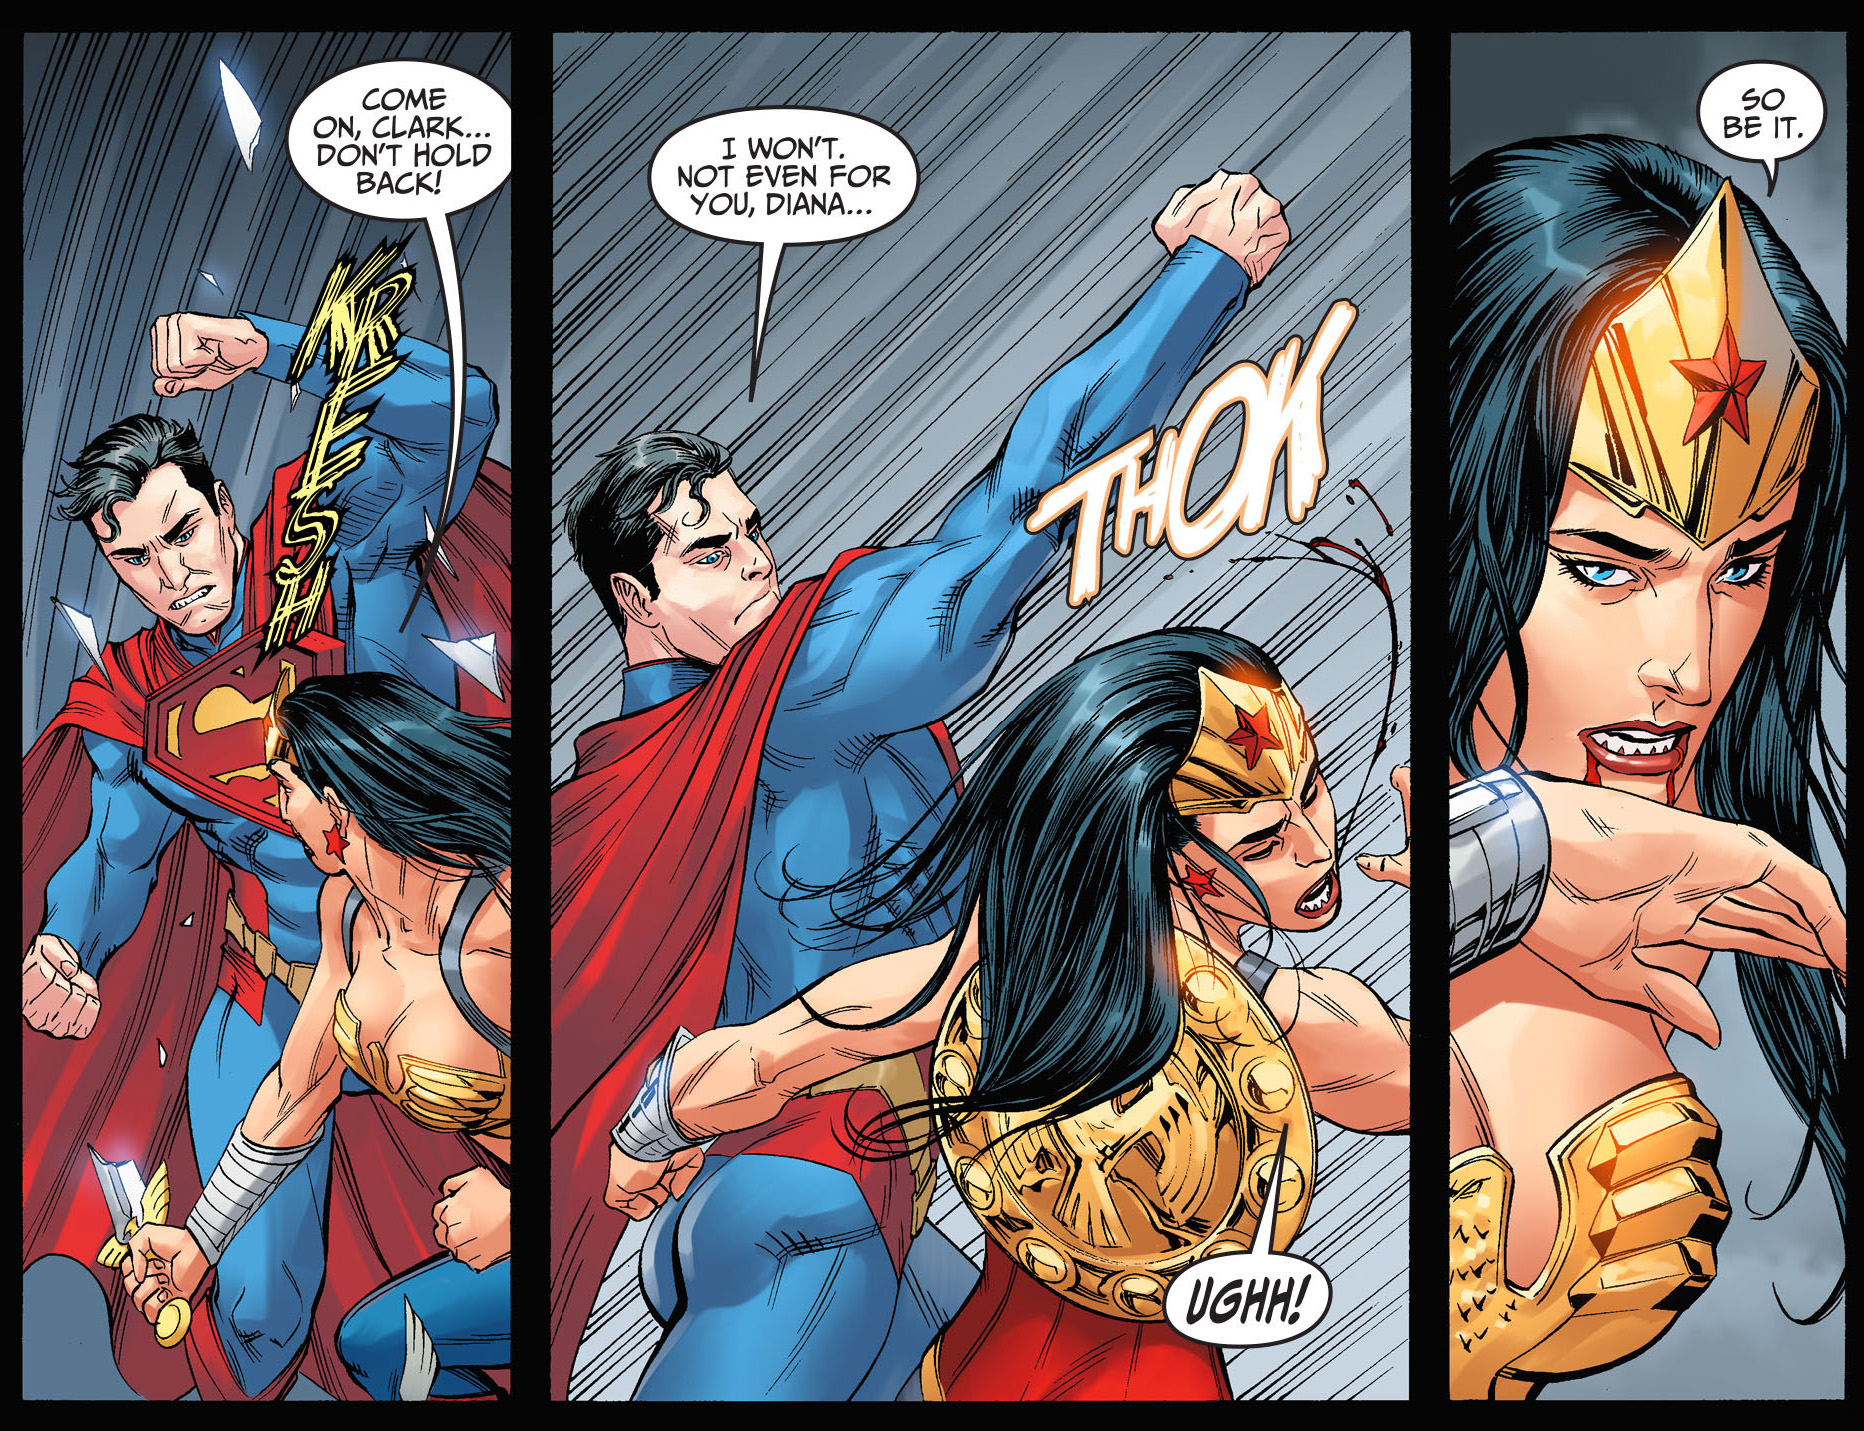 Superman versus wonder woman-2407